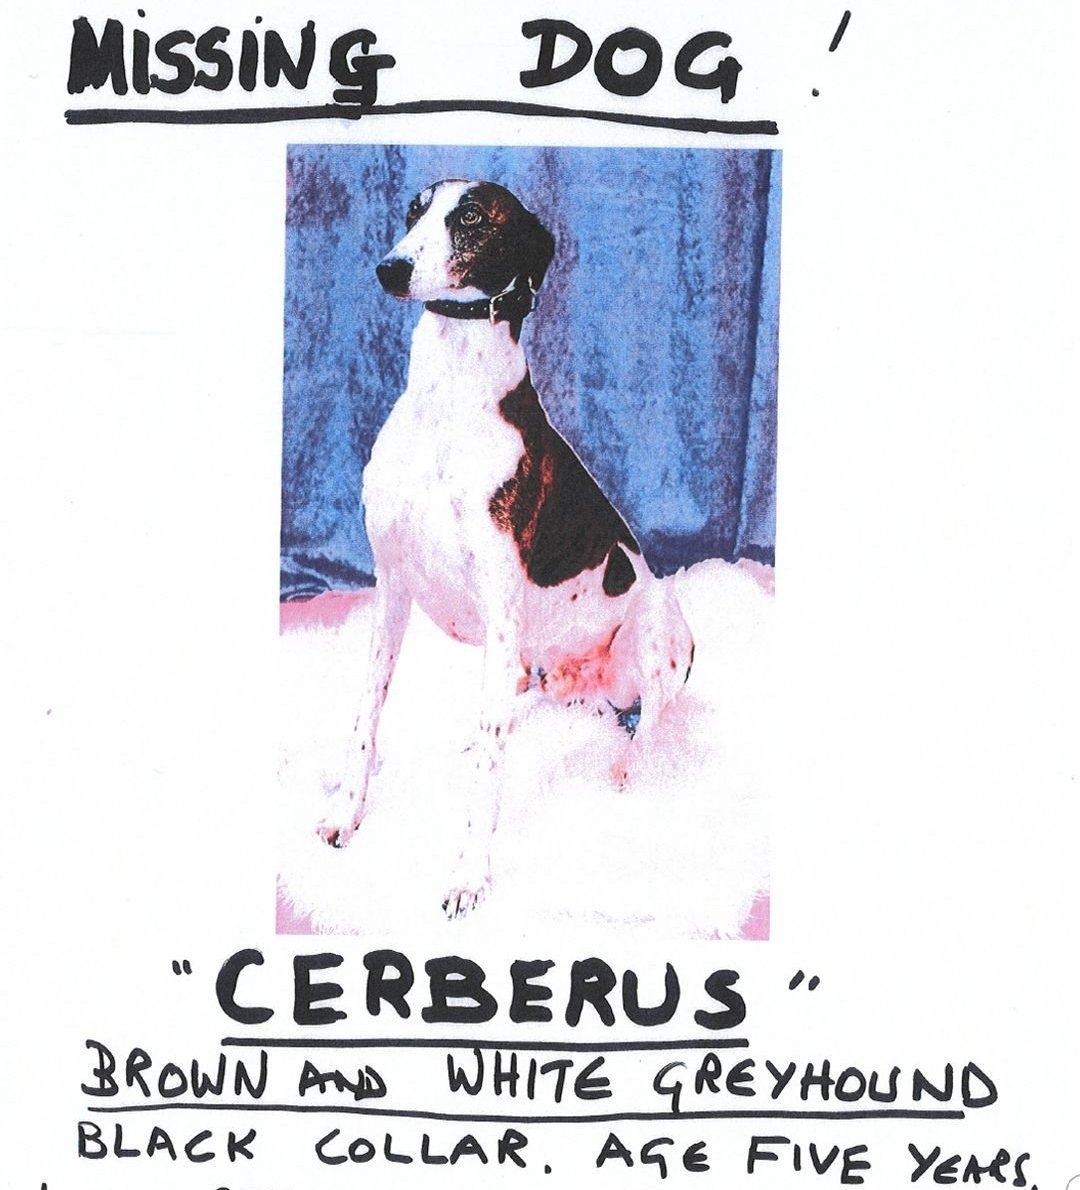 MISSING DOG. If you see this dog, let us know. Asking for a mate. His Nanna is distraught!!!  <br>http://pic.twitter.com/kxxpjpg346